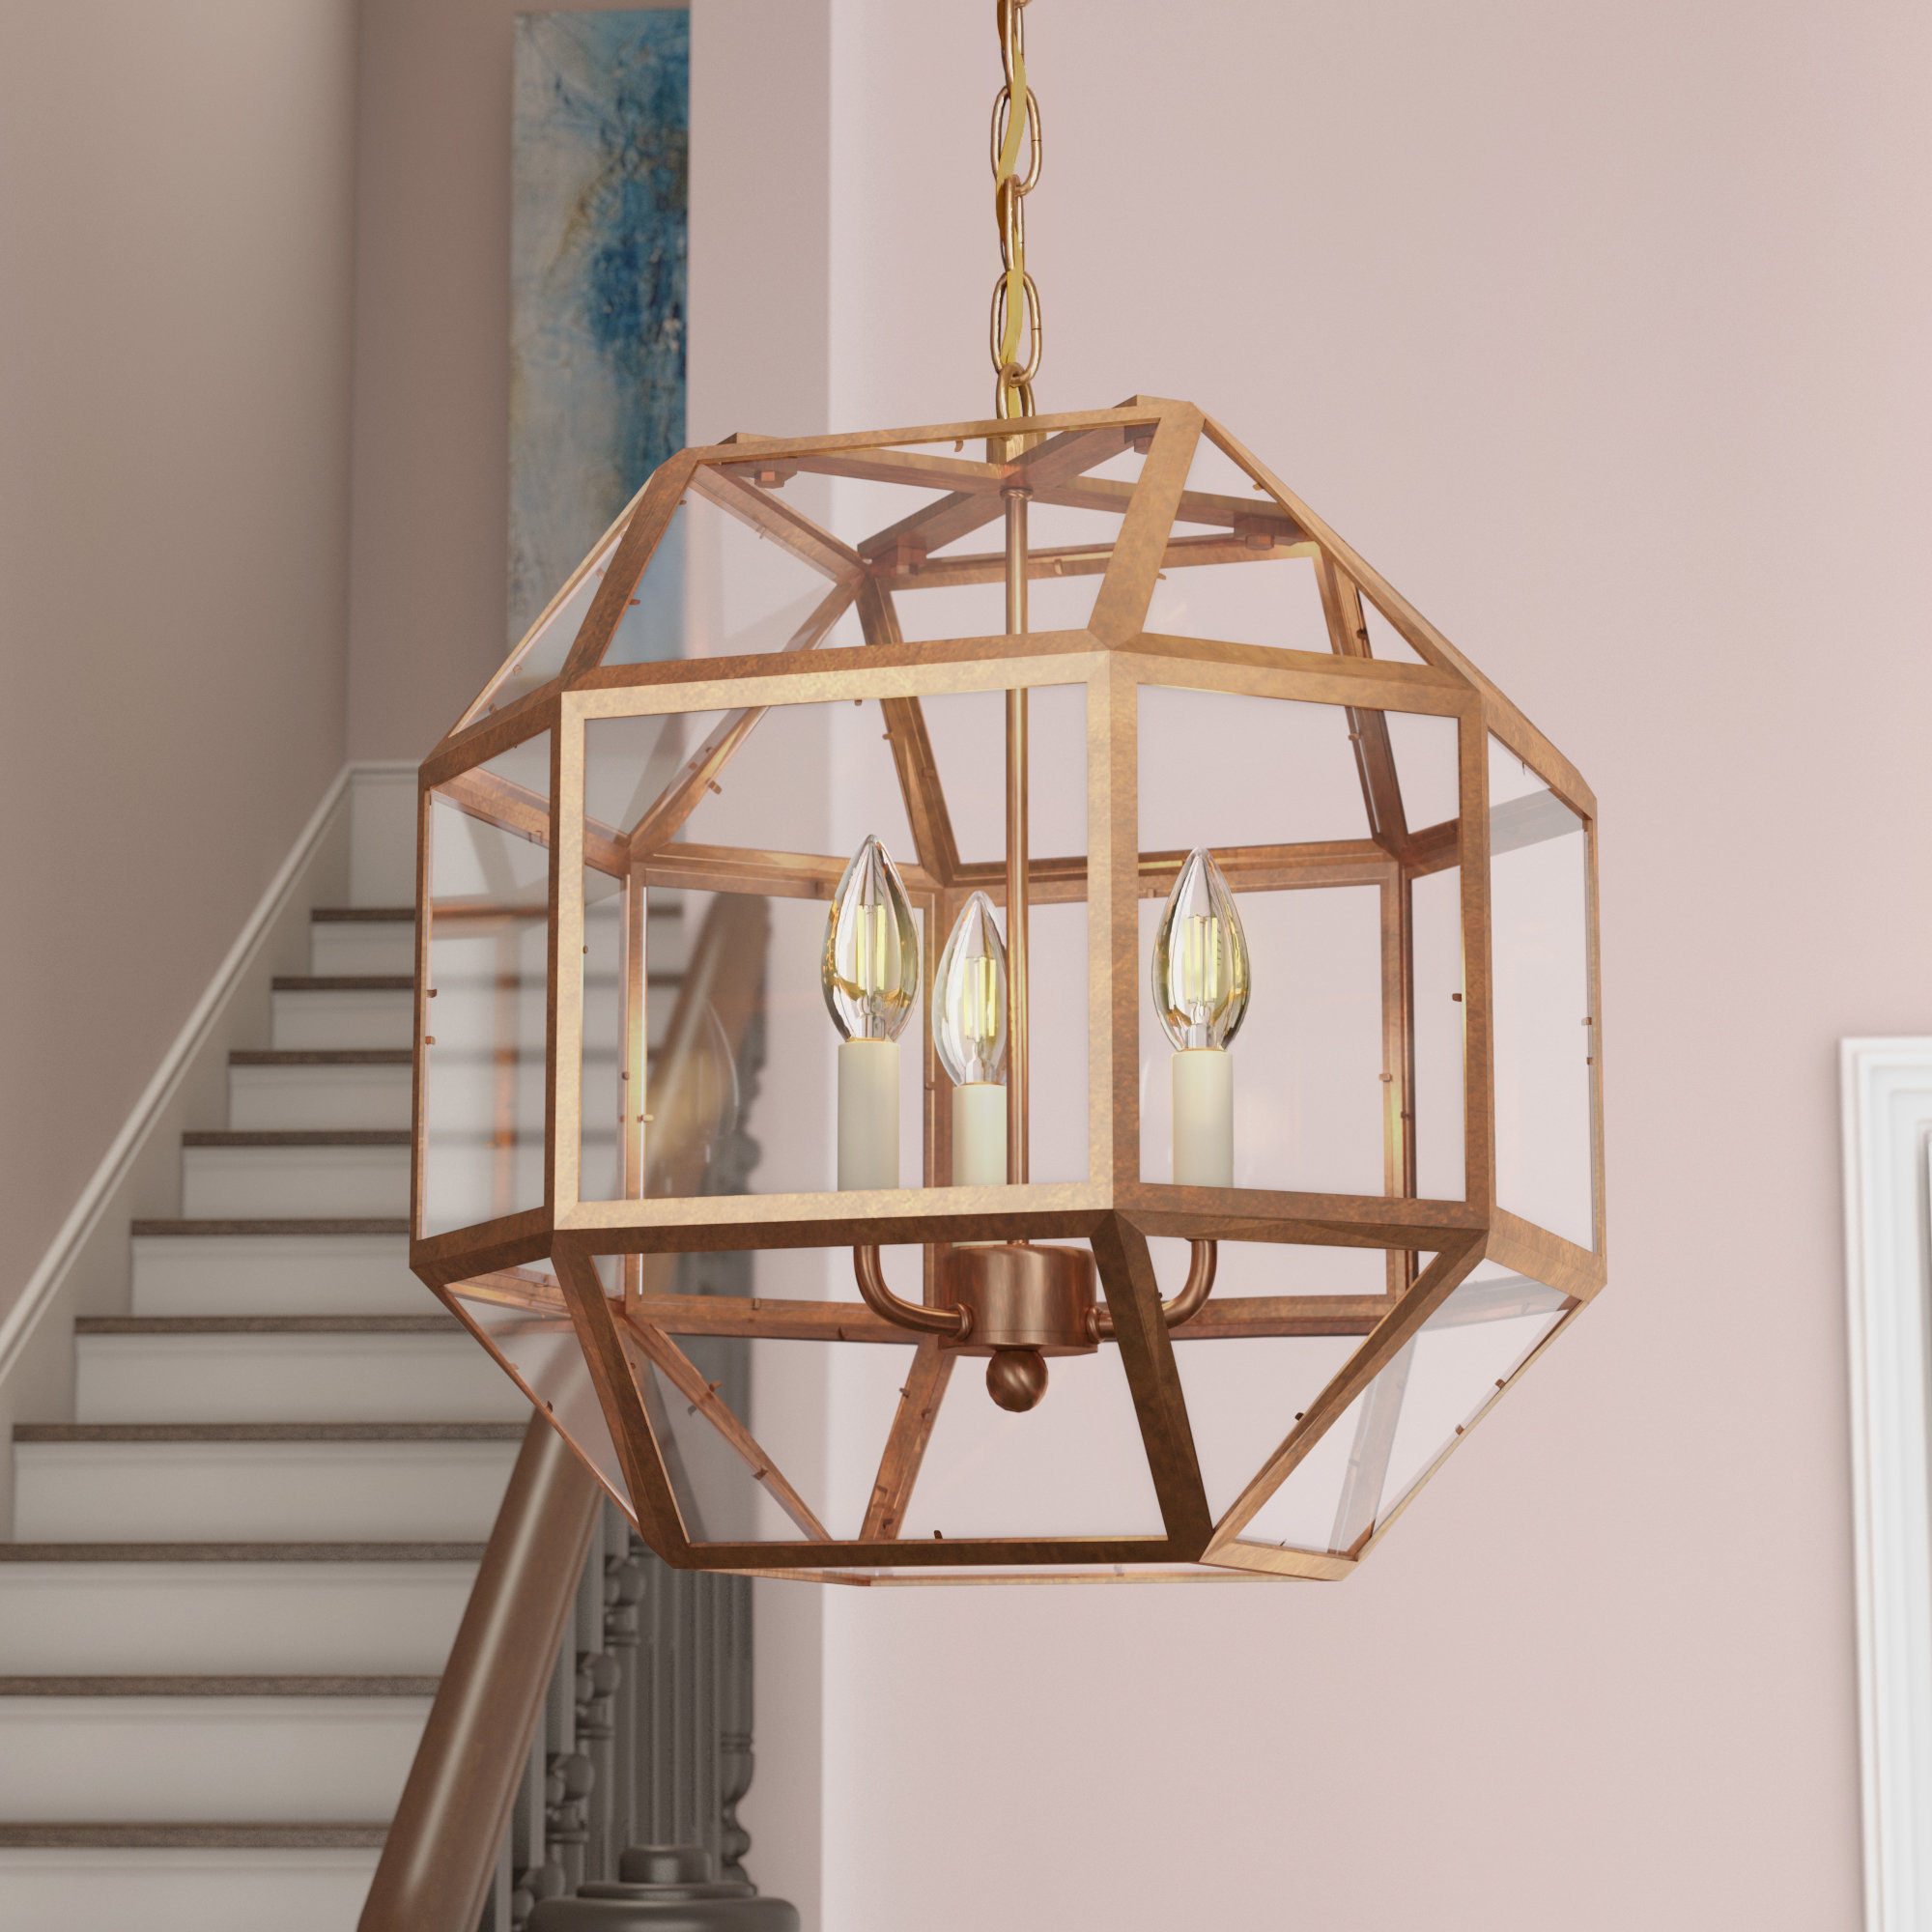 [%Geometric Chandeliers Sale – Up To 65% Off Until September Intended For Newest Tabit 5 Light Geometric Chandeliers|Tabit 5 Light Geometric Chandeliers In Most Recently Released Geometric Chandeliers Sale – Up To 65% Off Until September|Well Known Tabit 5 Light Geometric Chandeliers Within Geometric Chandeliers Sale – Up To 65% Off Until September|Well Liked Geometric Chandeliers Sale – Up To 65% Off Until September Throughout Tabit 5 Light Geometric Chandeliers%] (View 18 of 25)